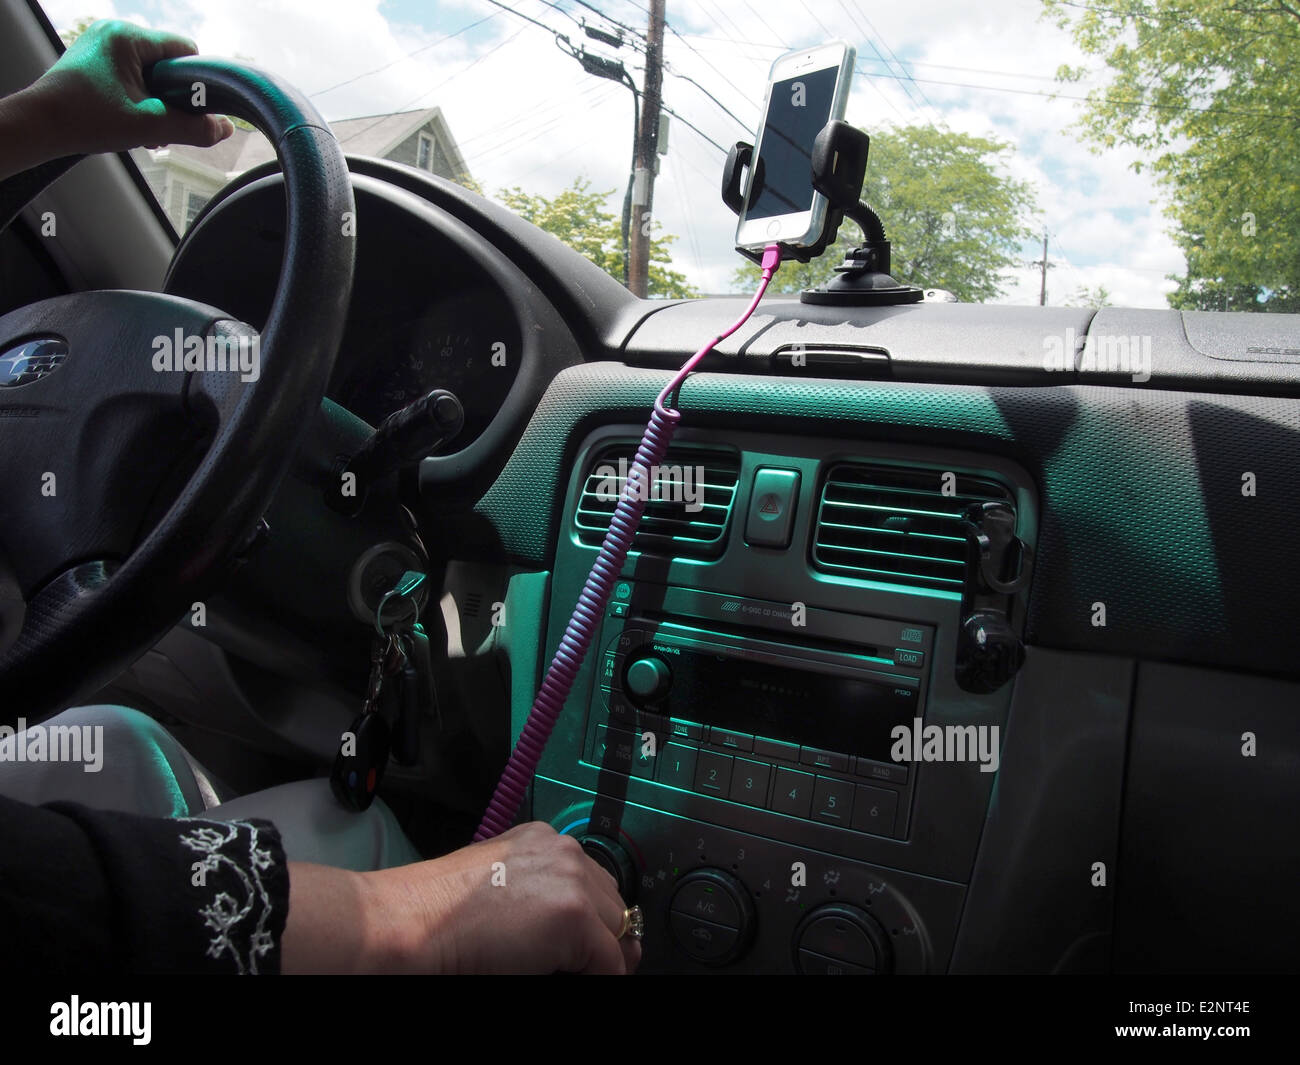 Driver uses iPhone mounted to car dashboard to navigate, USA, June 7, 2014, © Katharine Andriotis - Stock Image